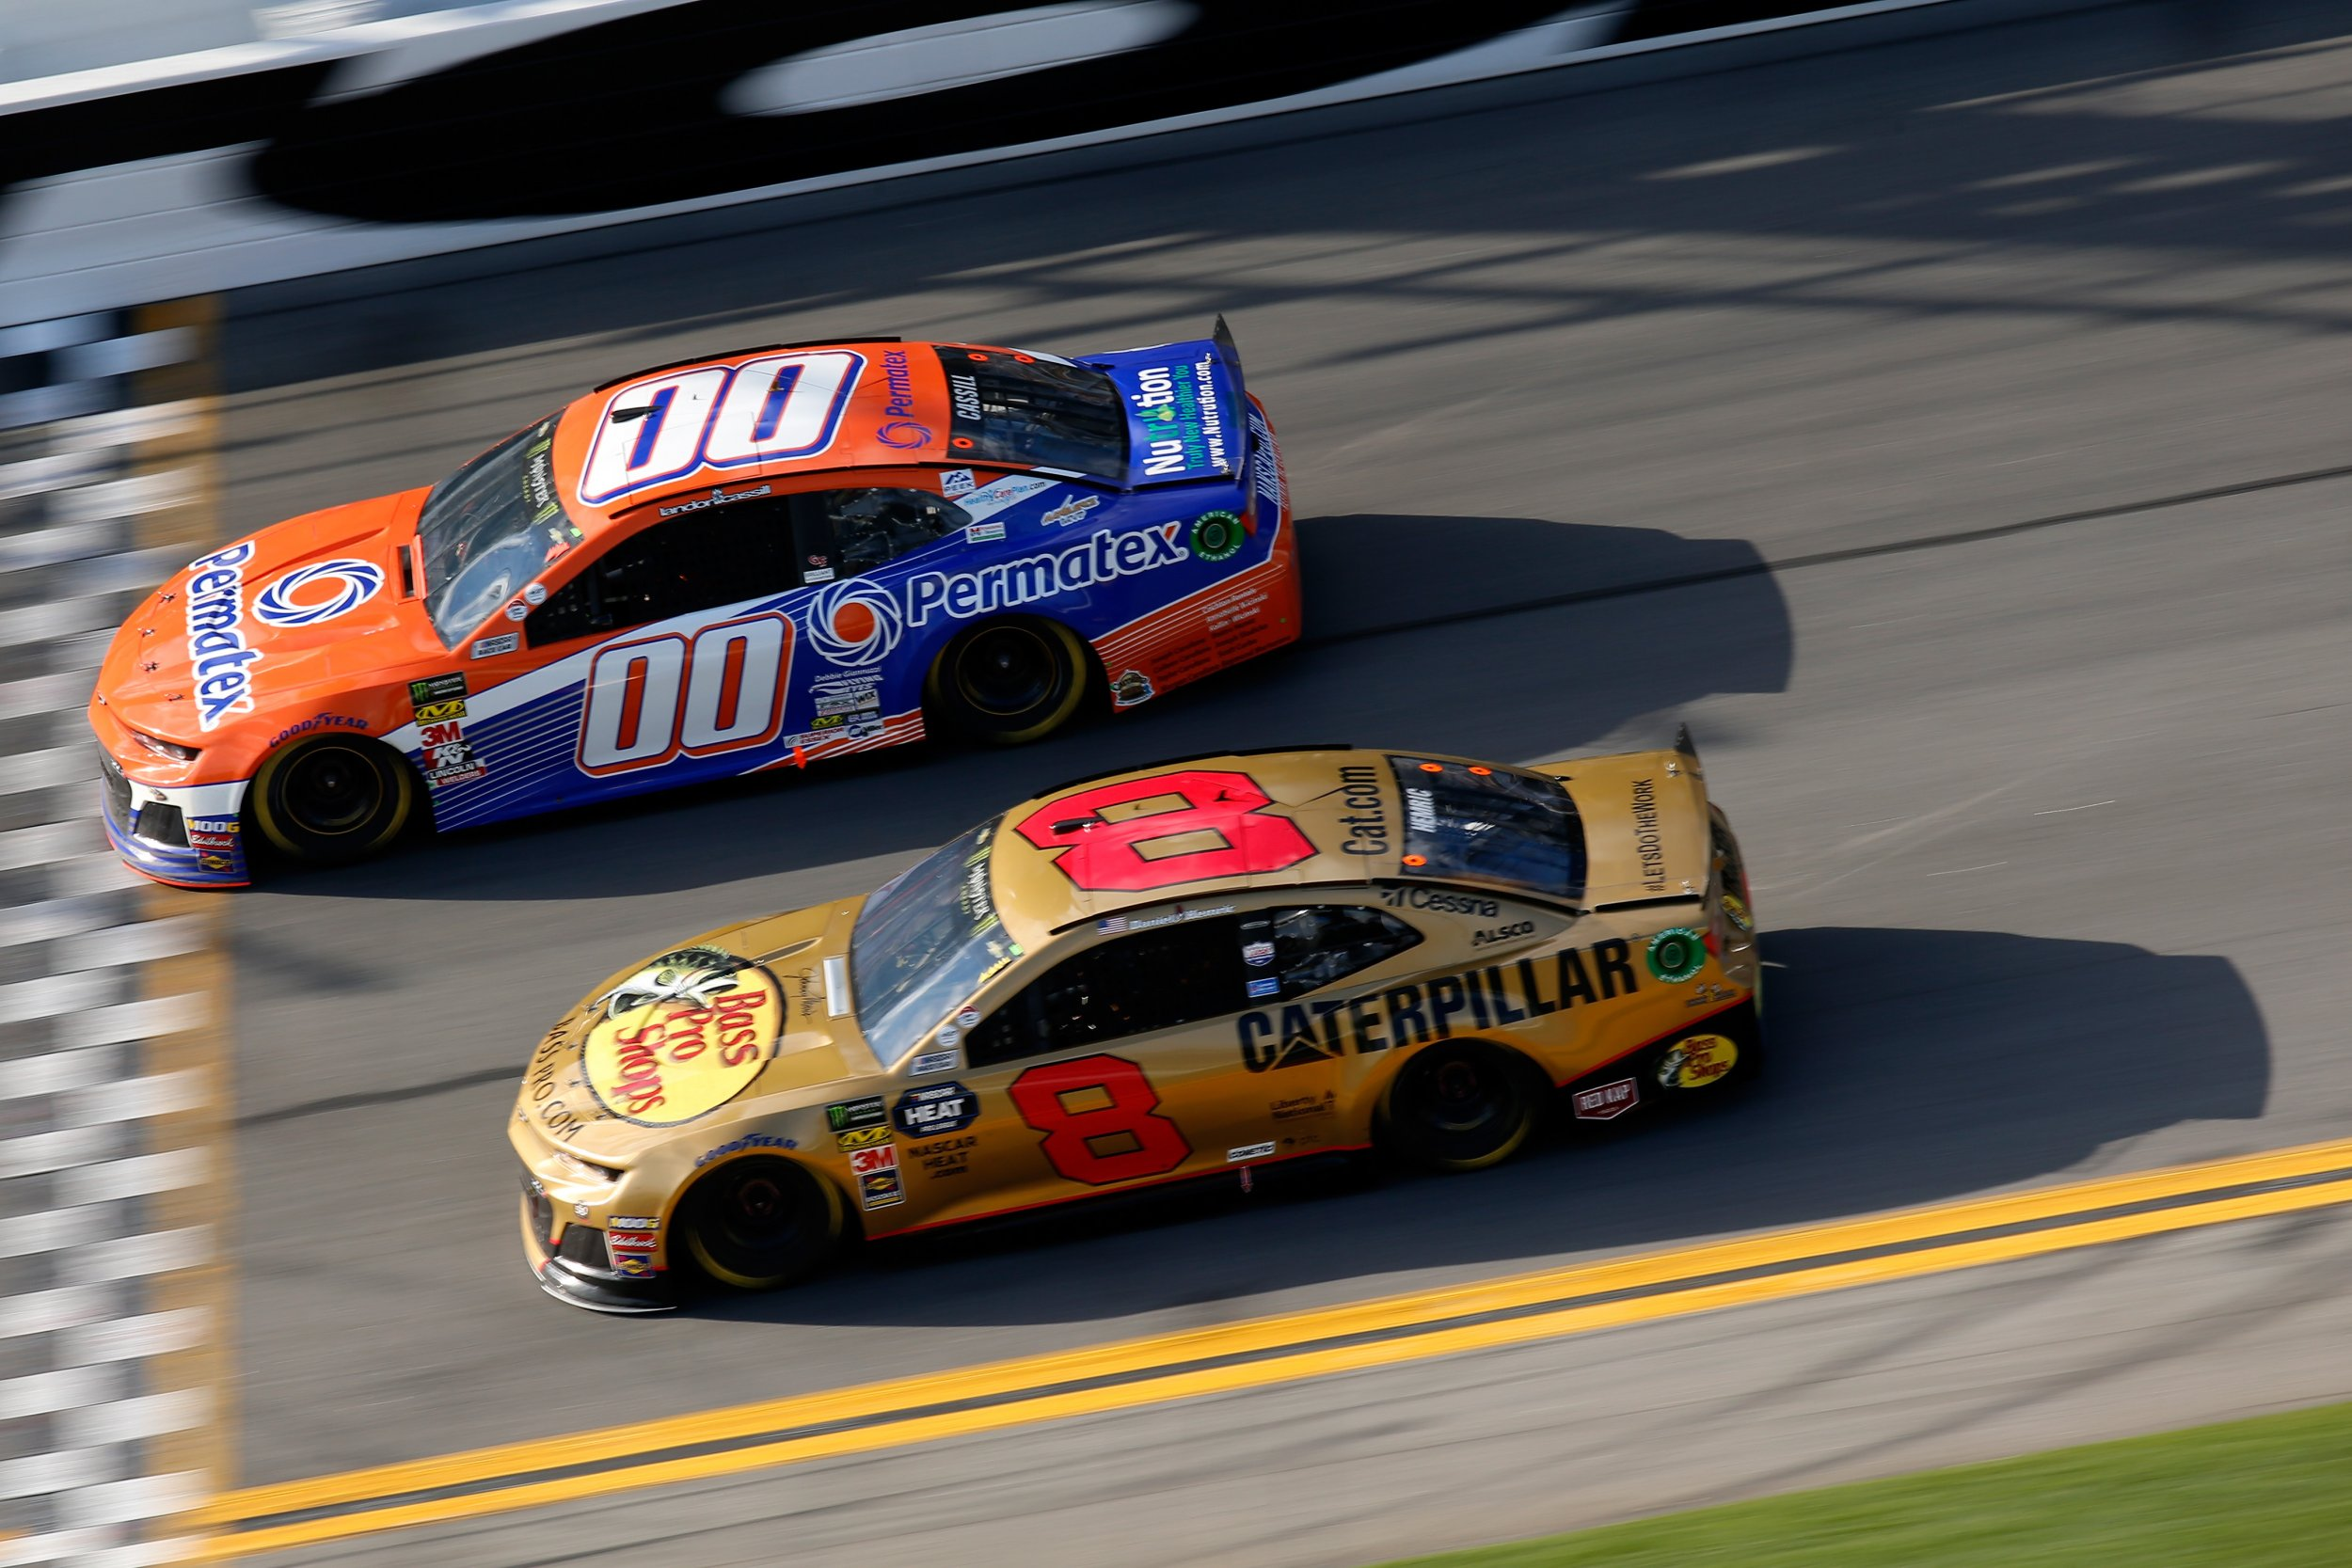 Daytona 500: Who Is In the Lead?